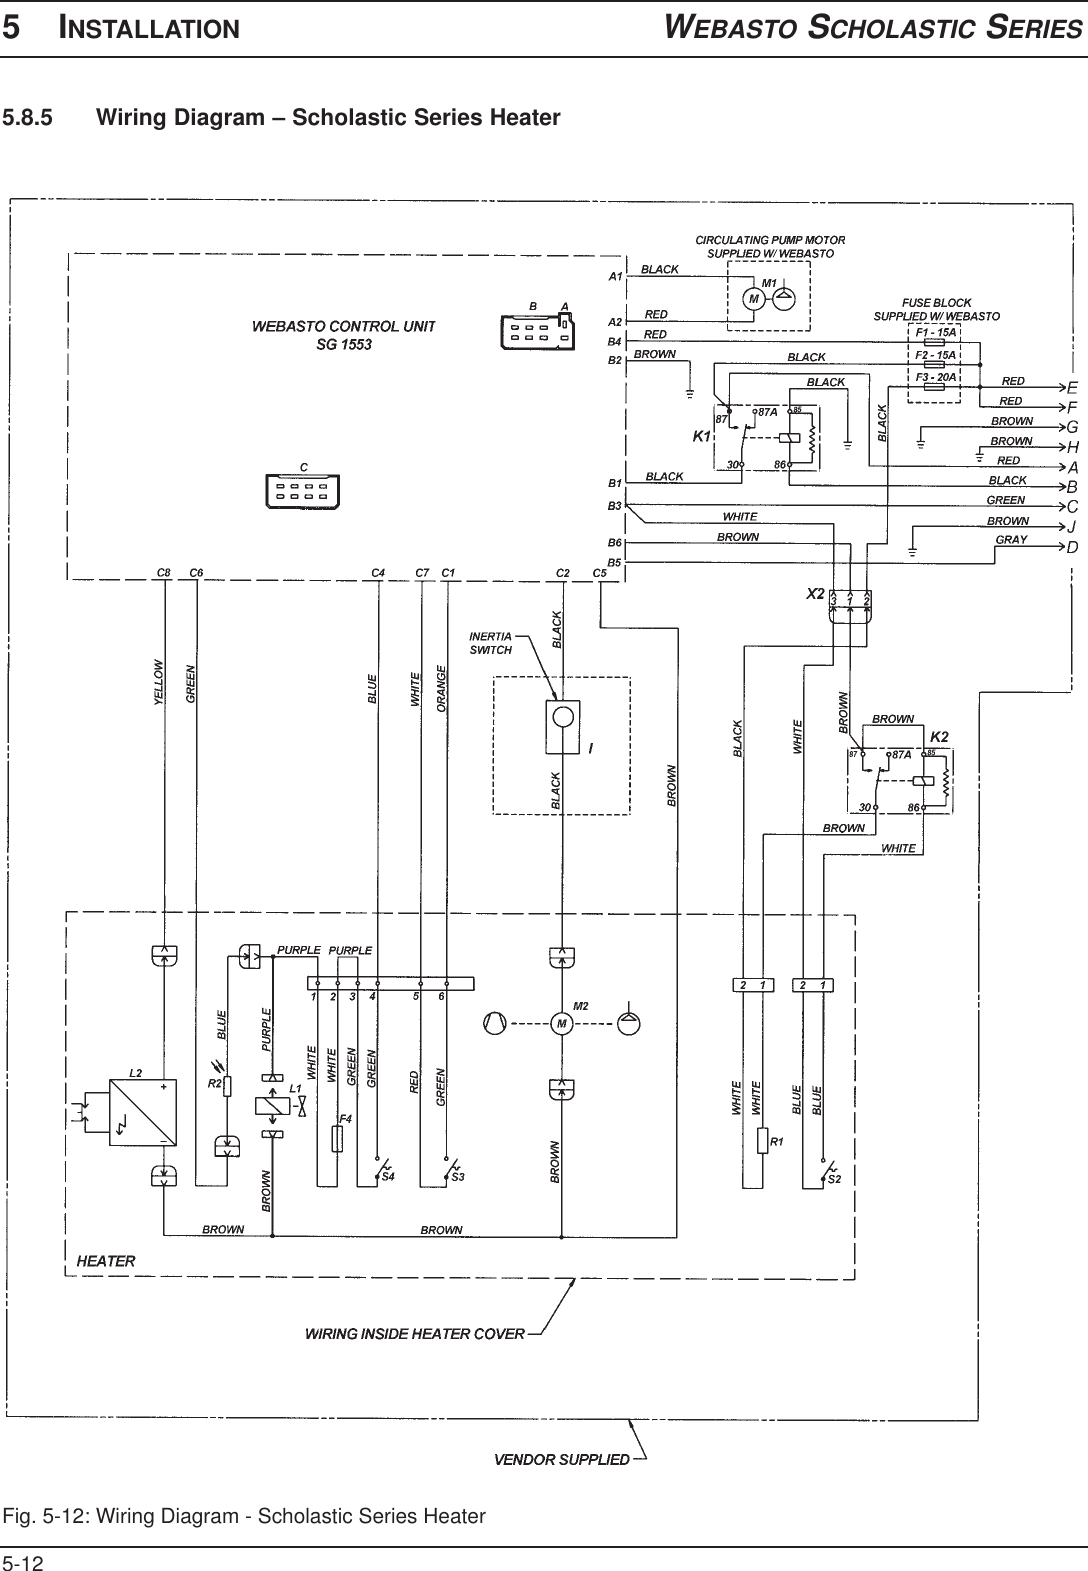 webasto heater wiring diagram webasto blue bird scholastic series users manual bluebird  webasto blue bird scholastic series